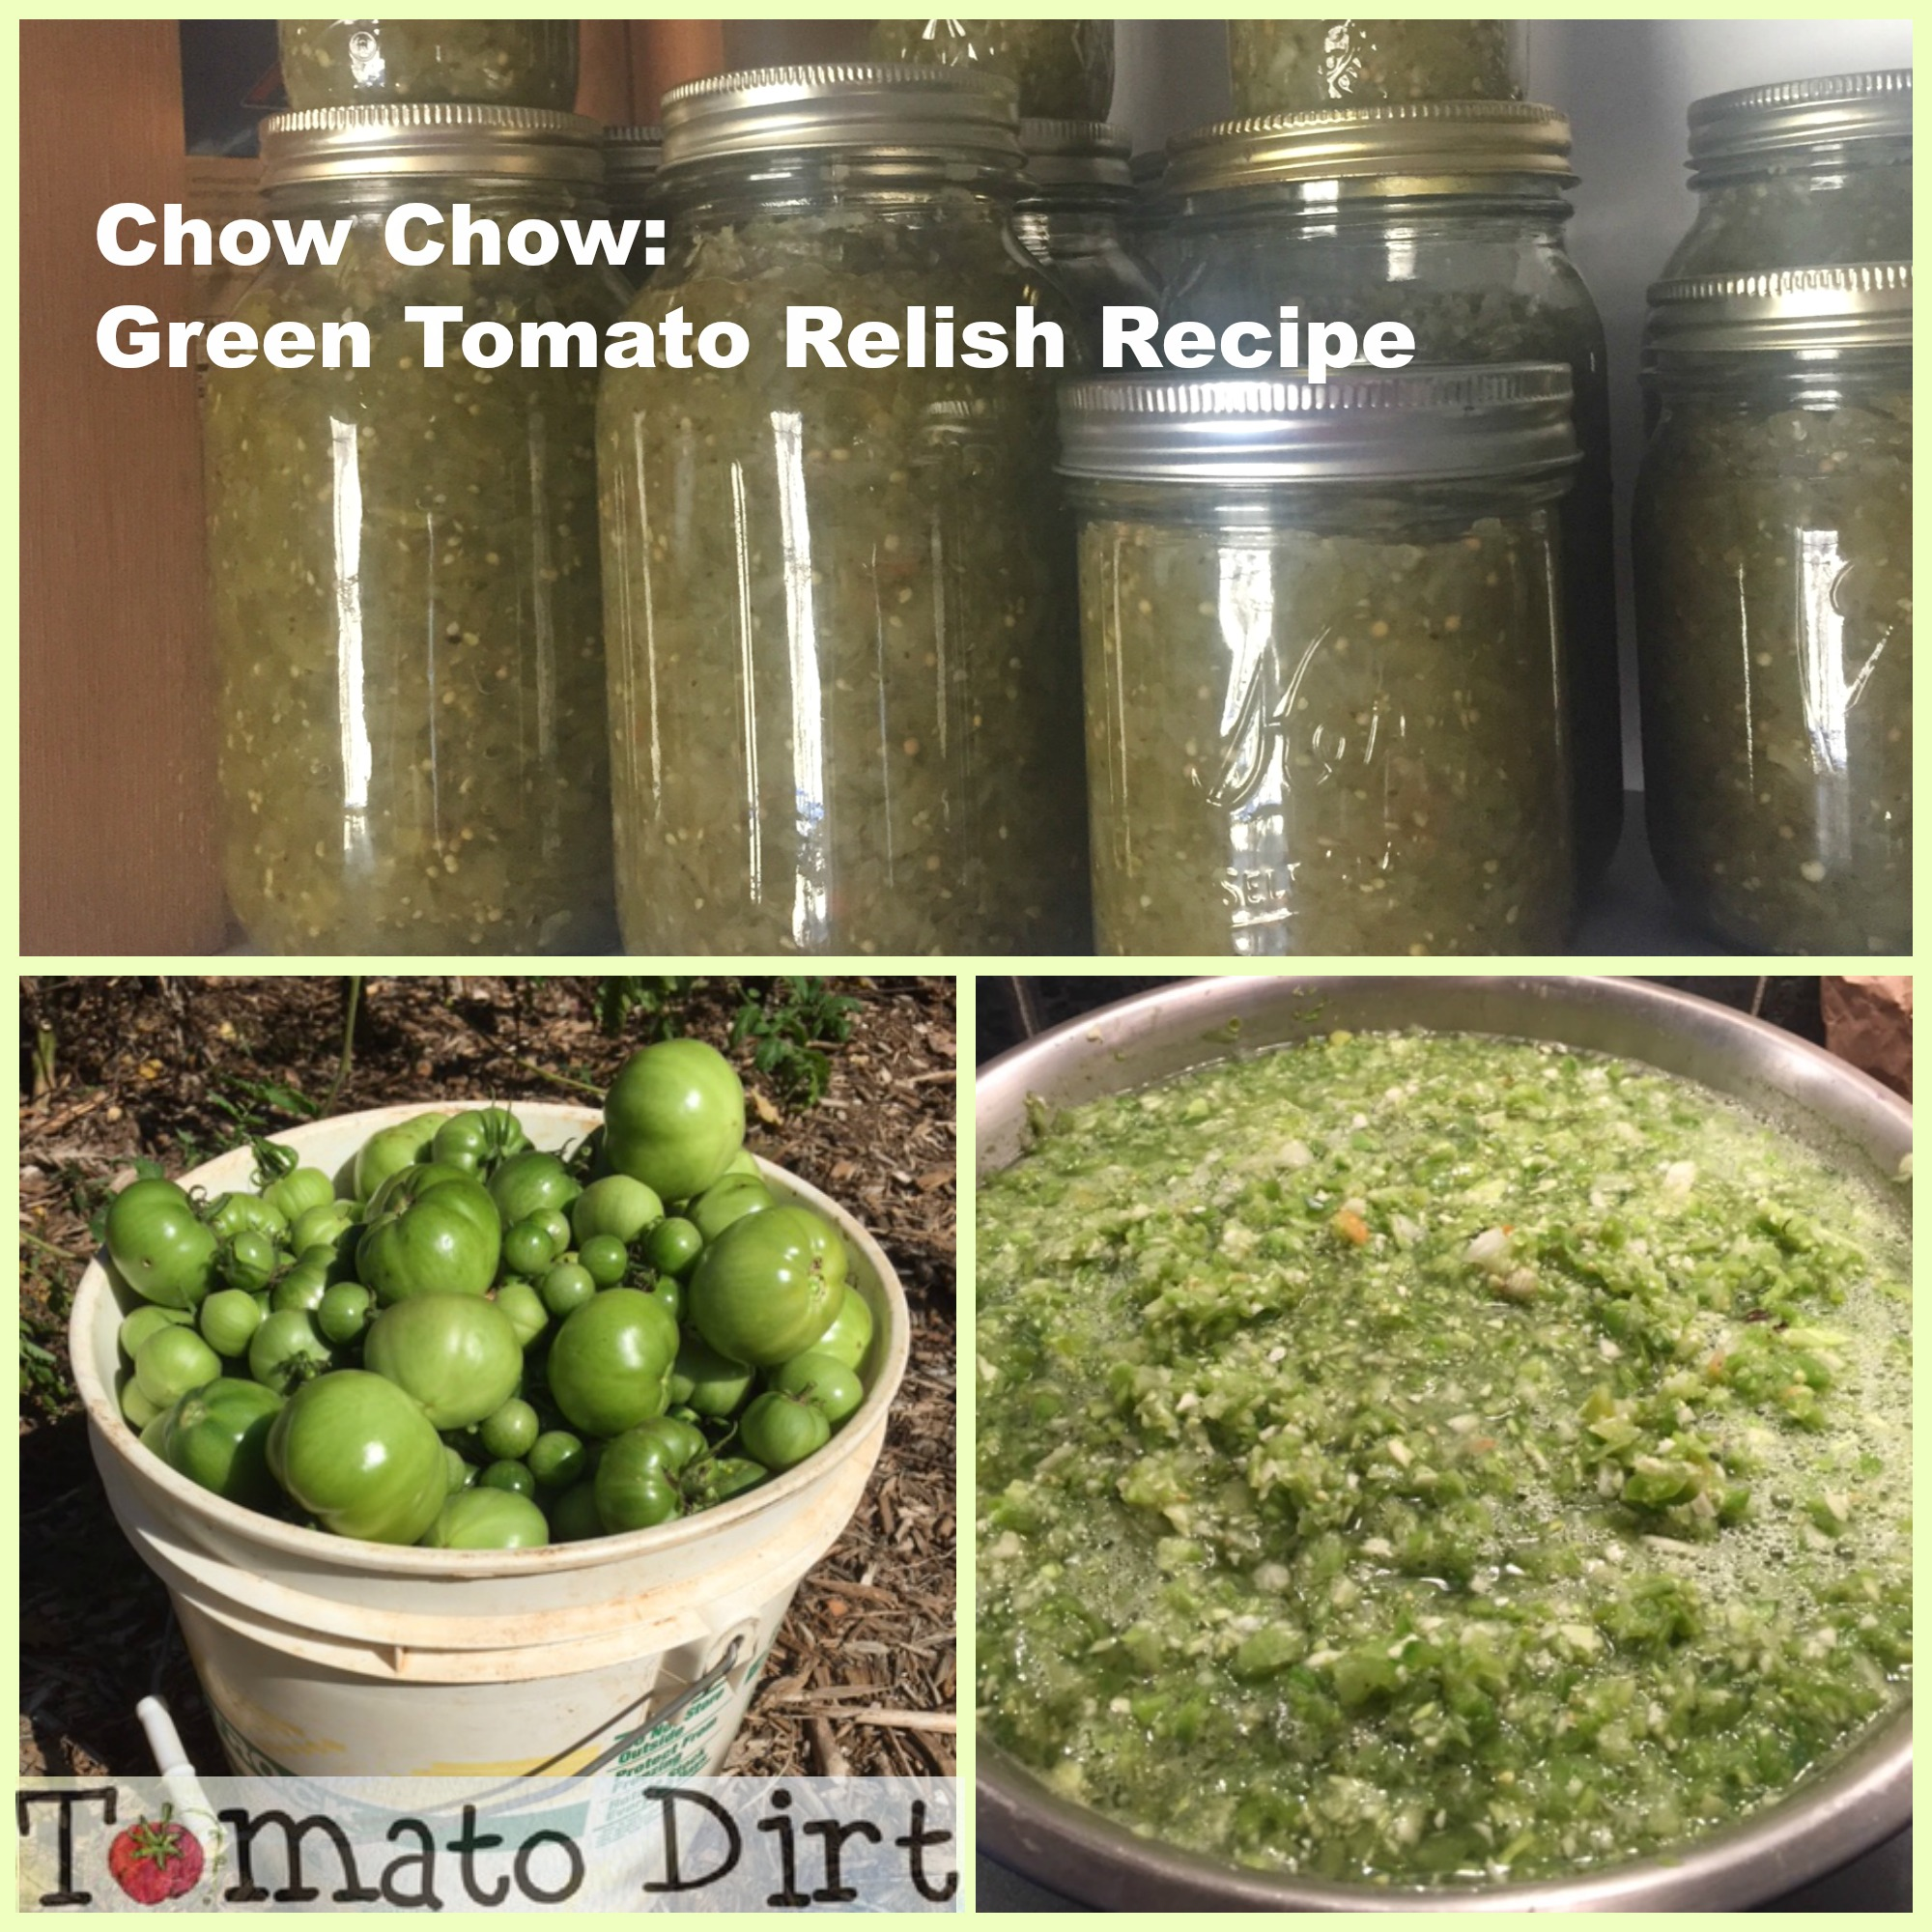 Chow Chow: Green Tomato Relish Recipe with Tomato Dirt